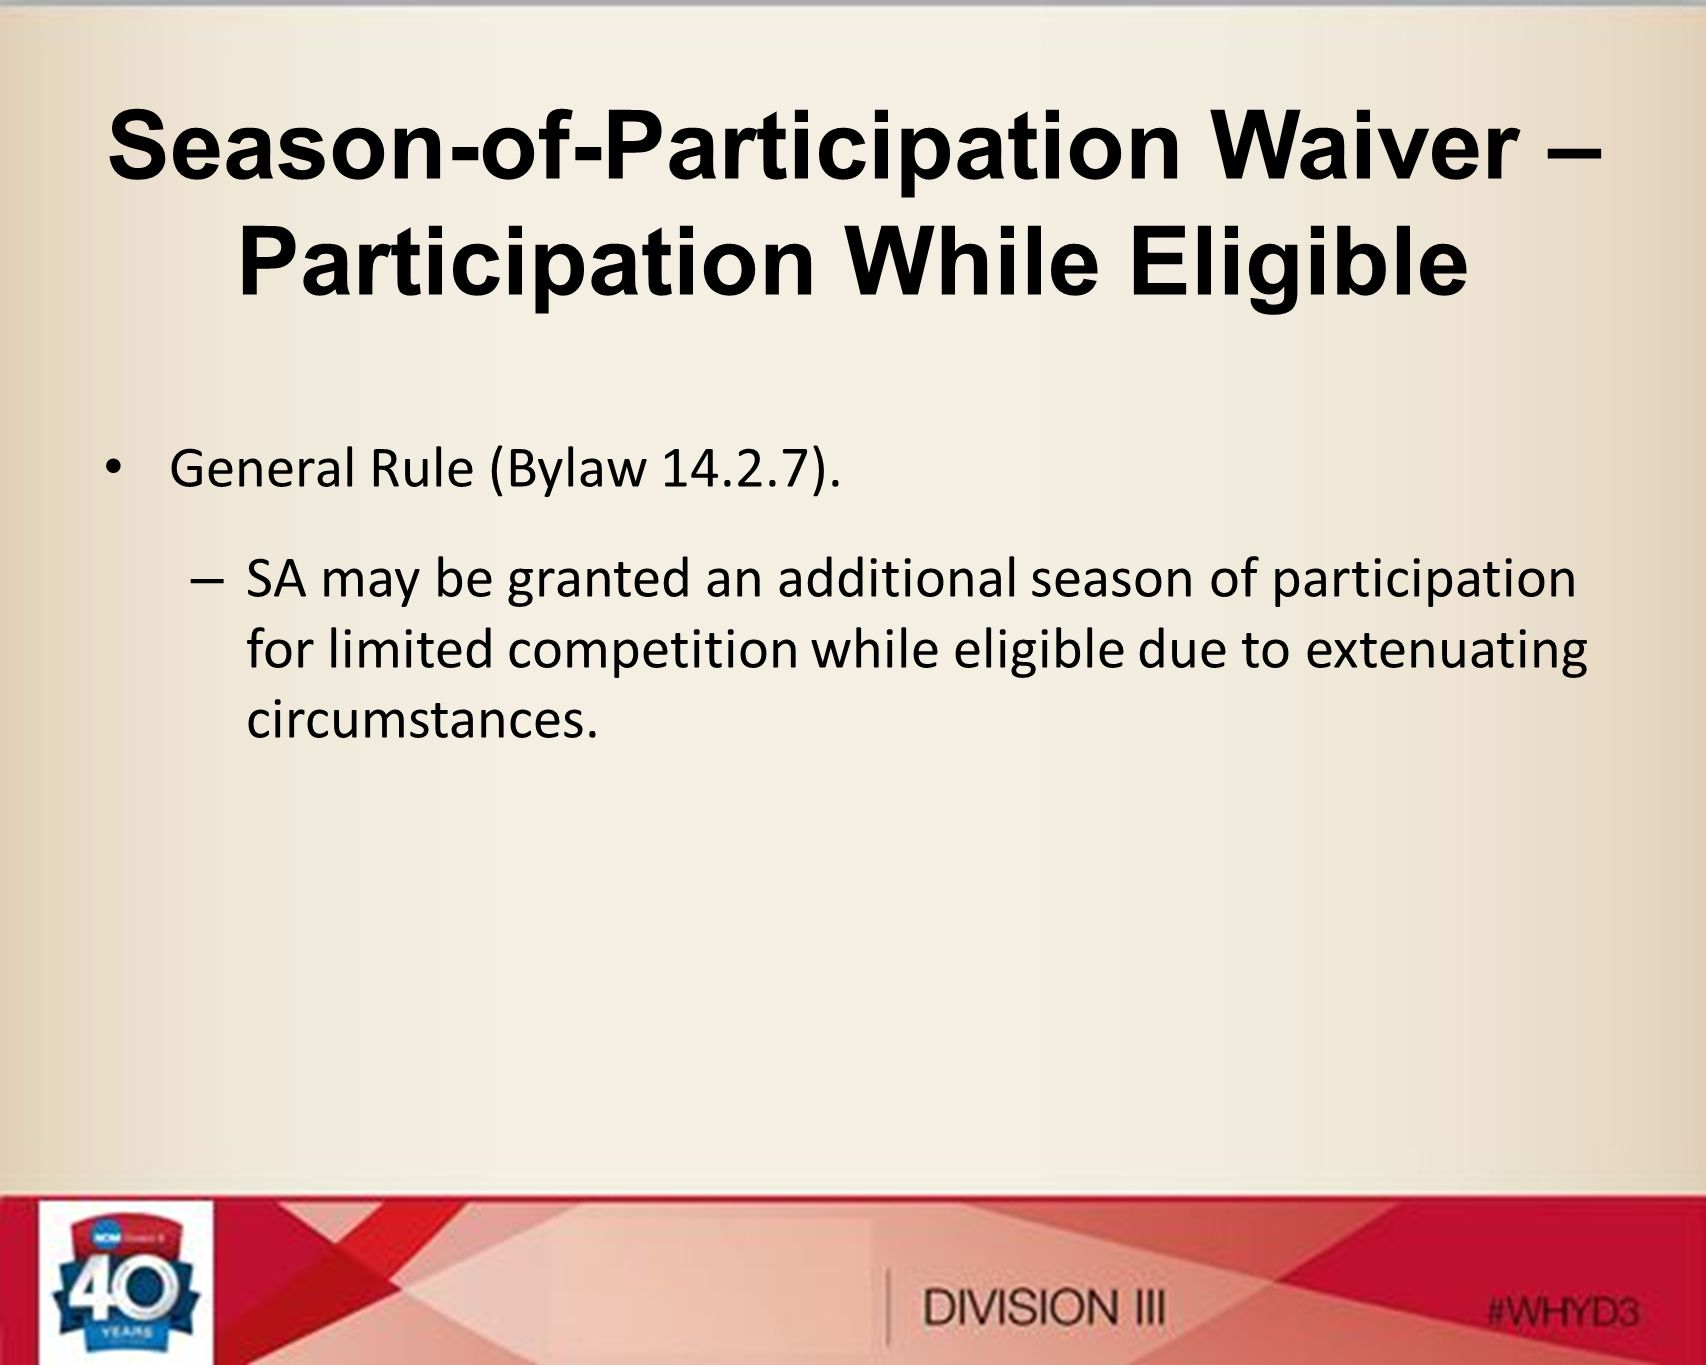 Season-of-Participation Waiver – Participation While Eligible